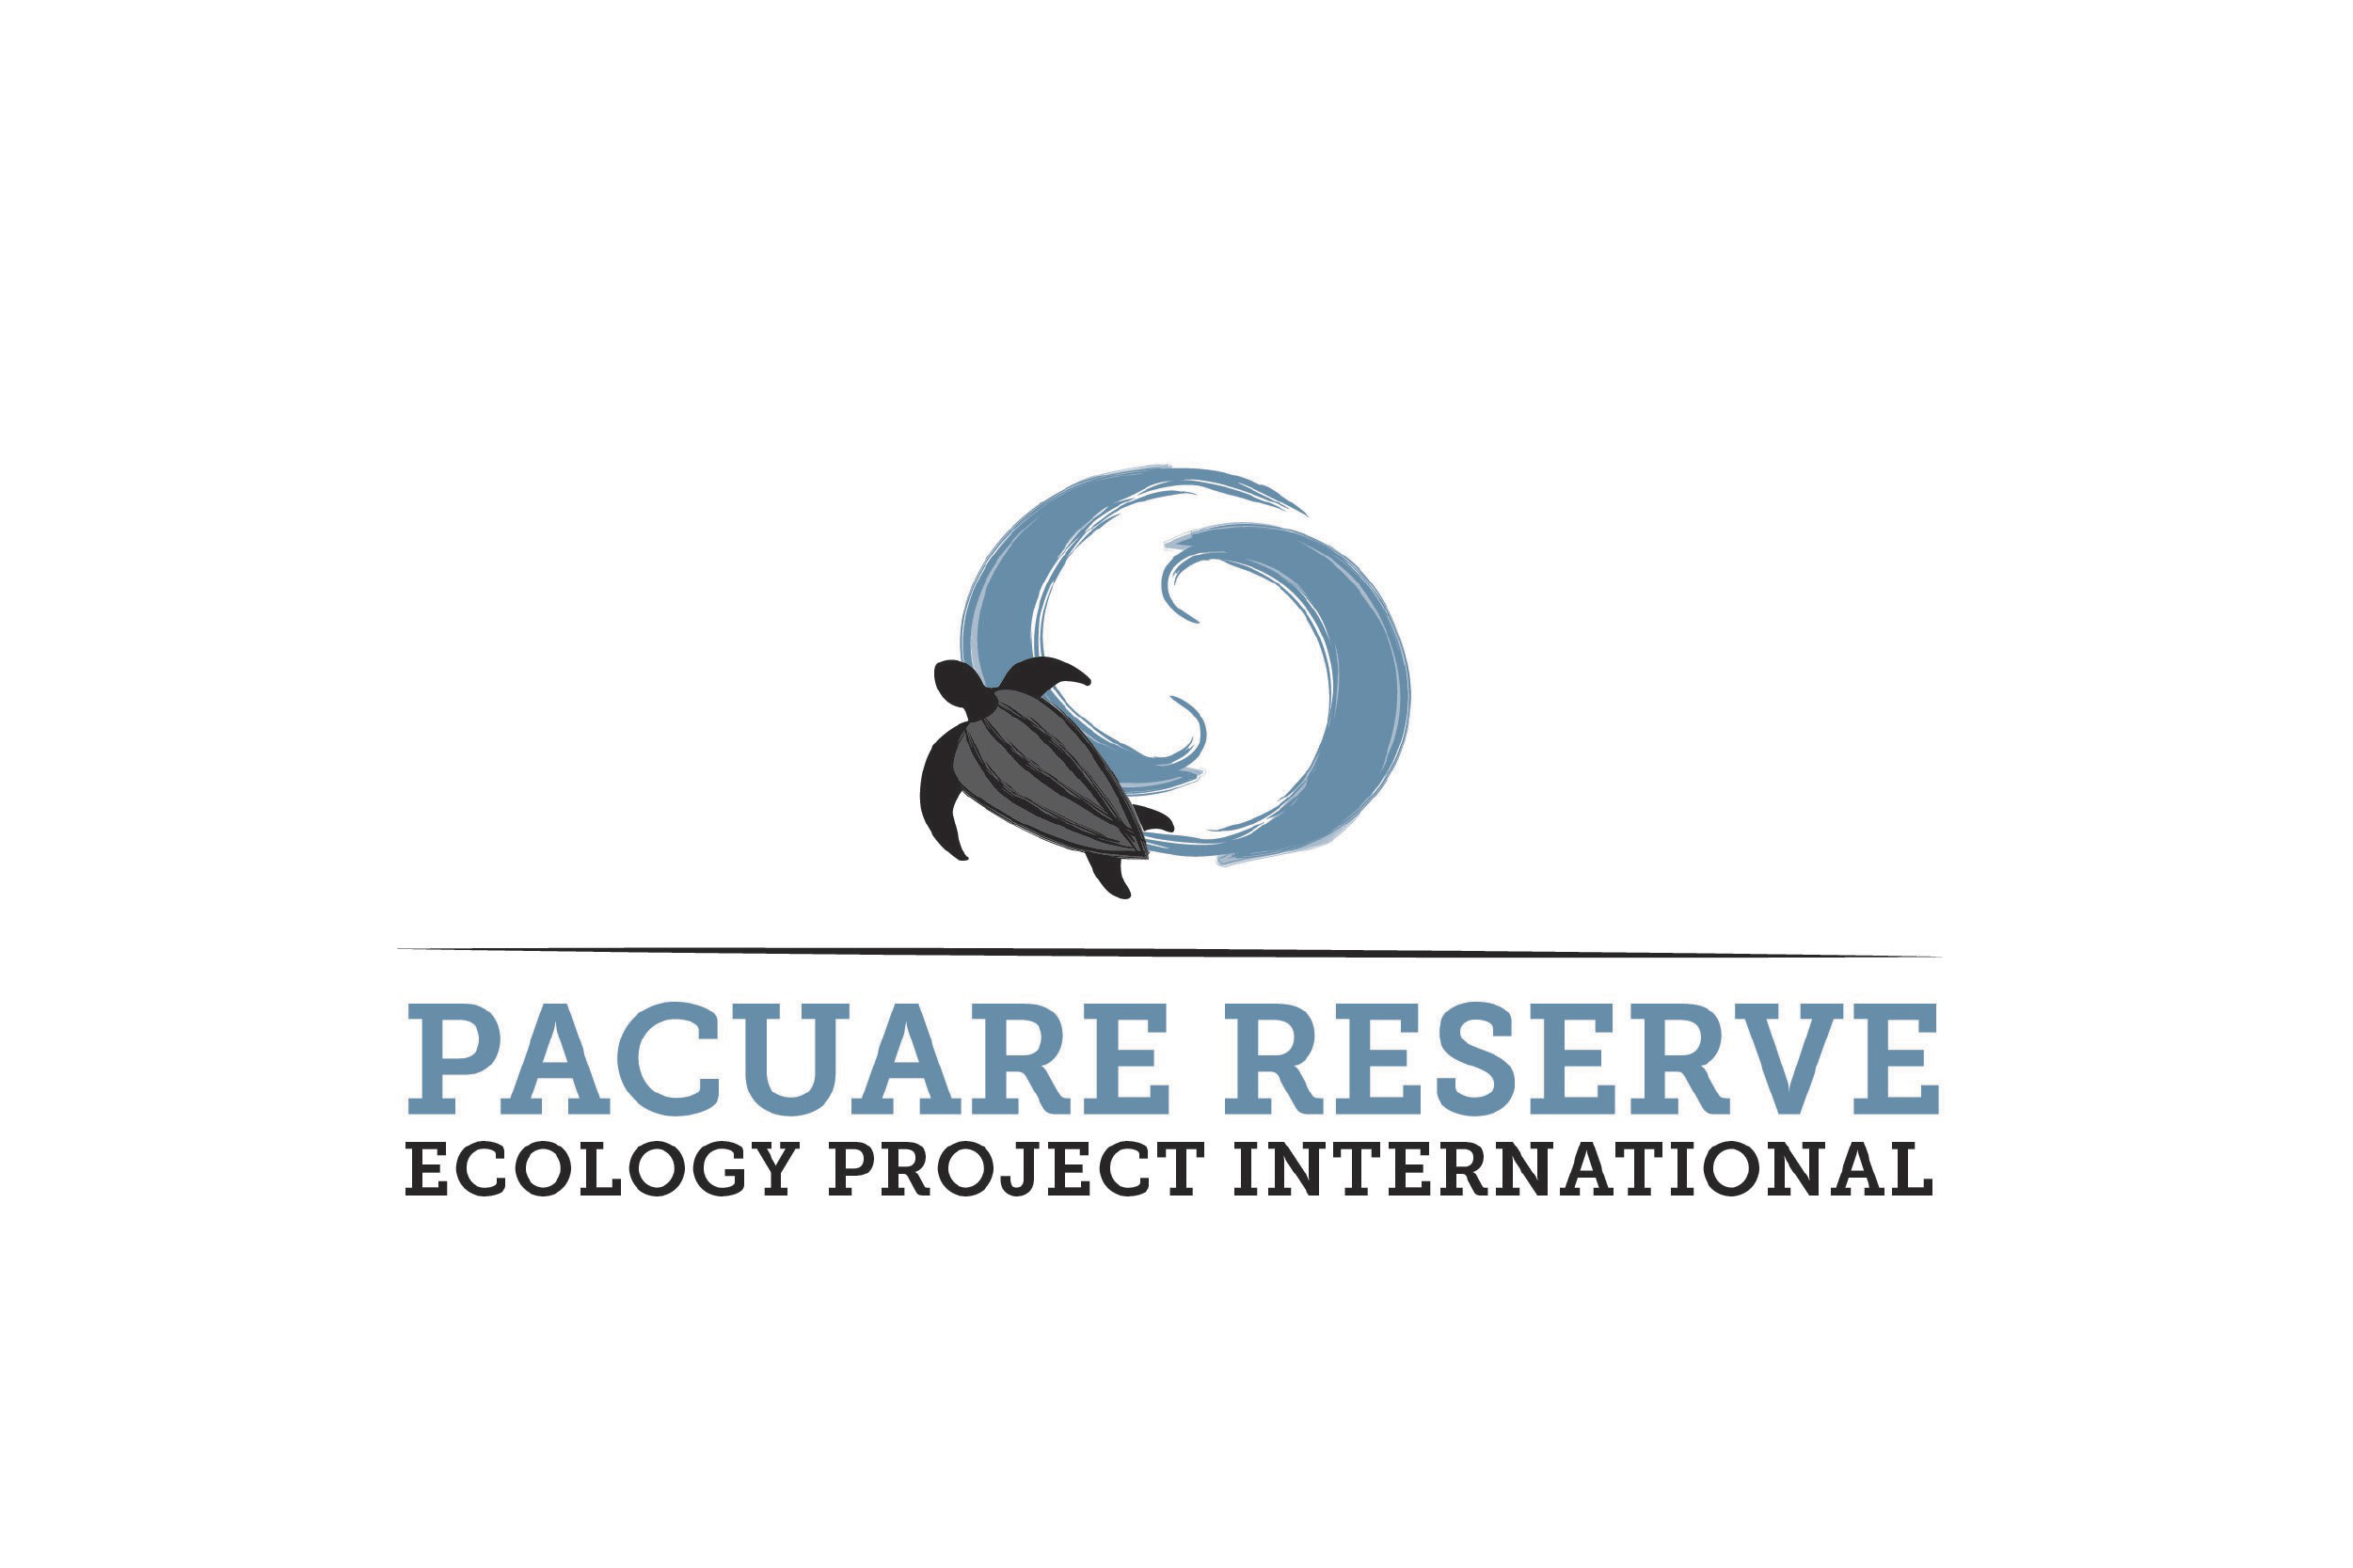 pacuare